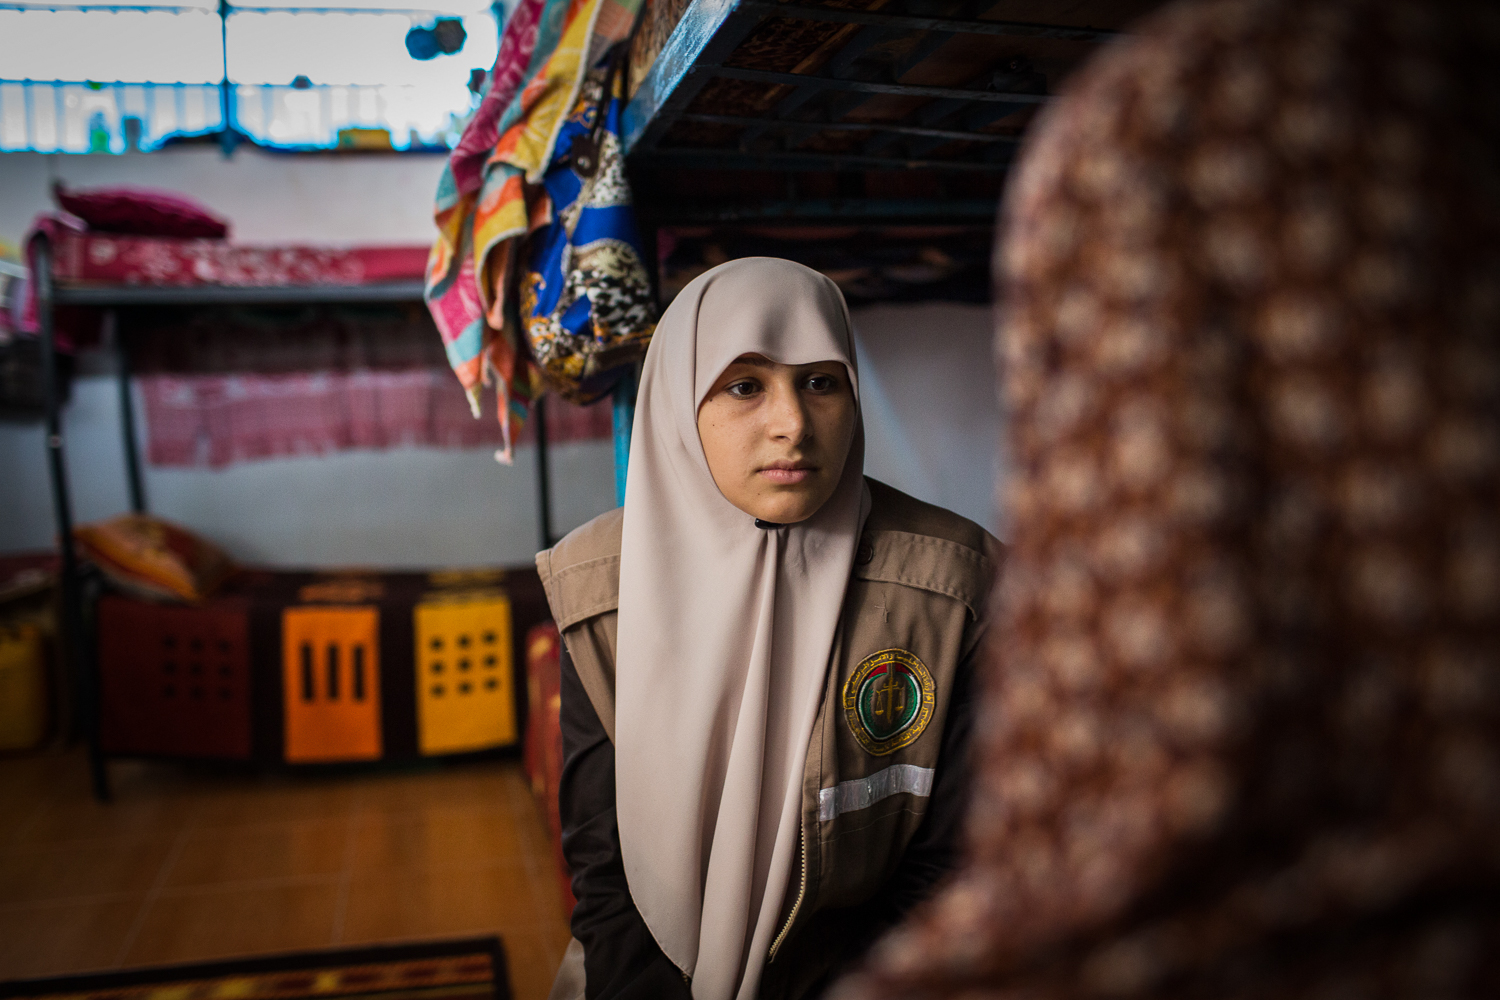 Umm Ahmed, who works as both a prison supervisor and social worker, talks to a prisoner at Gaza's Reform and Rehabilitation Centre for Women. [Celia Peterson/Al Jazeera]